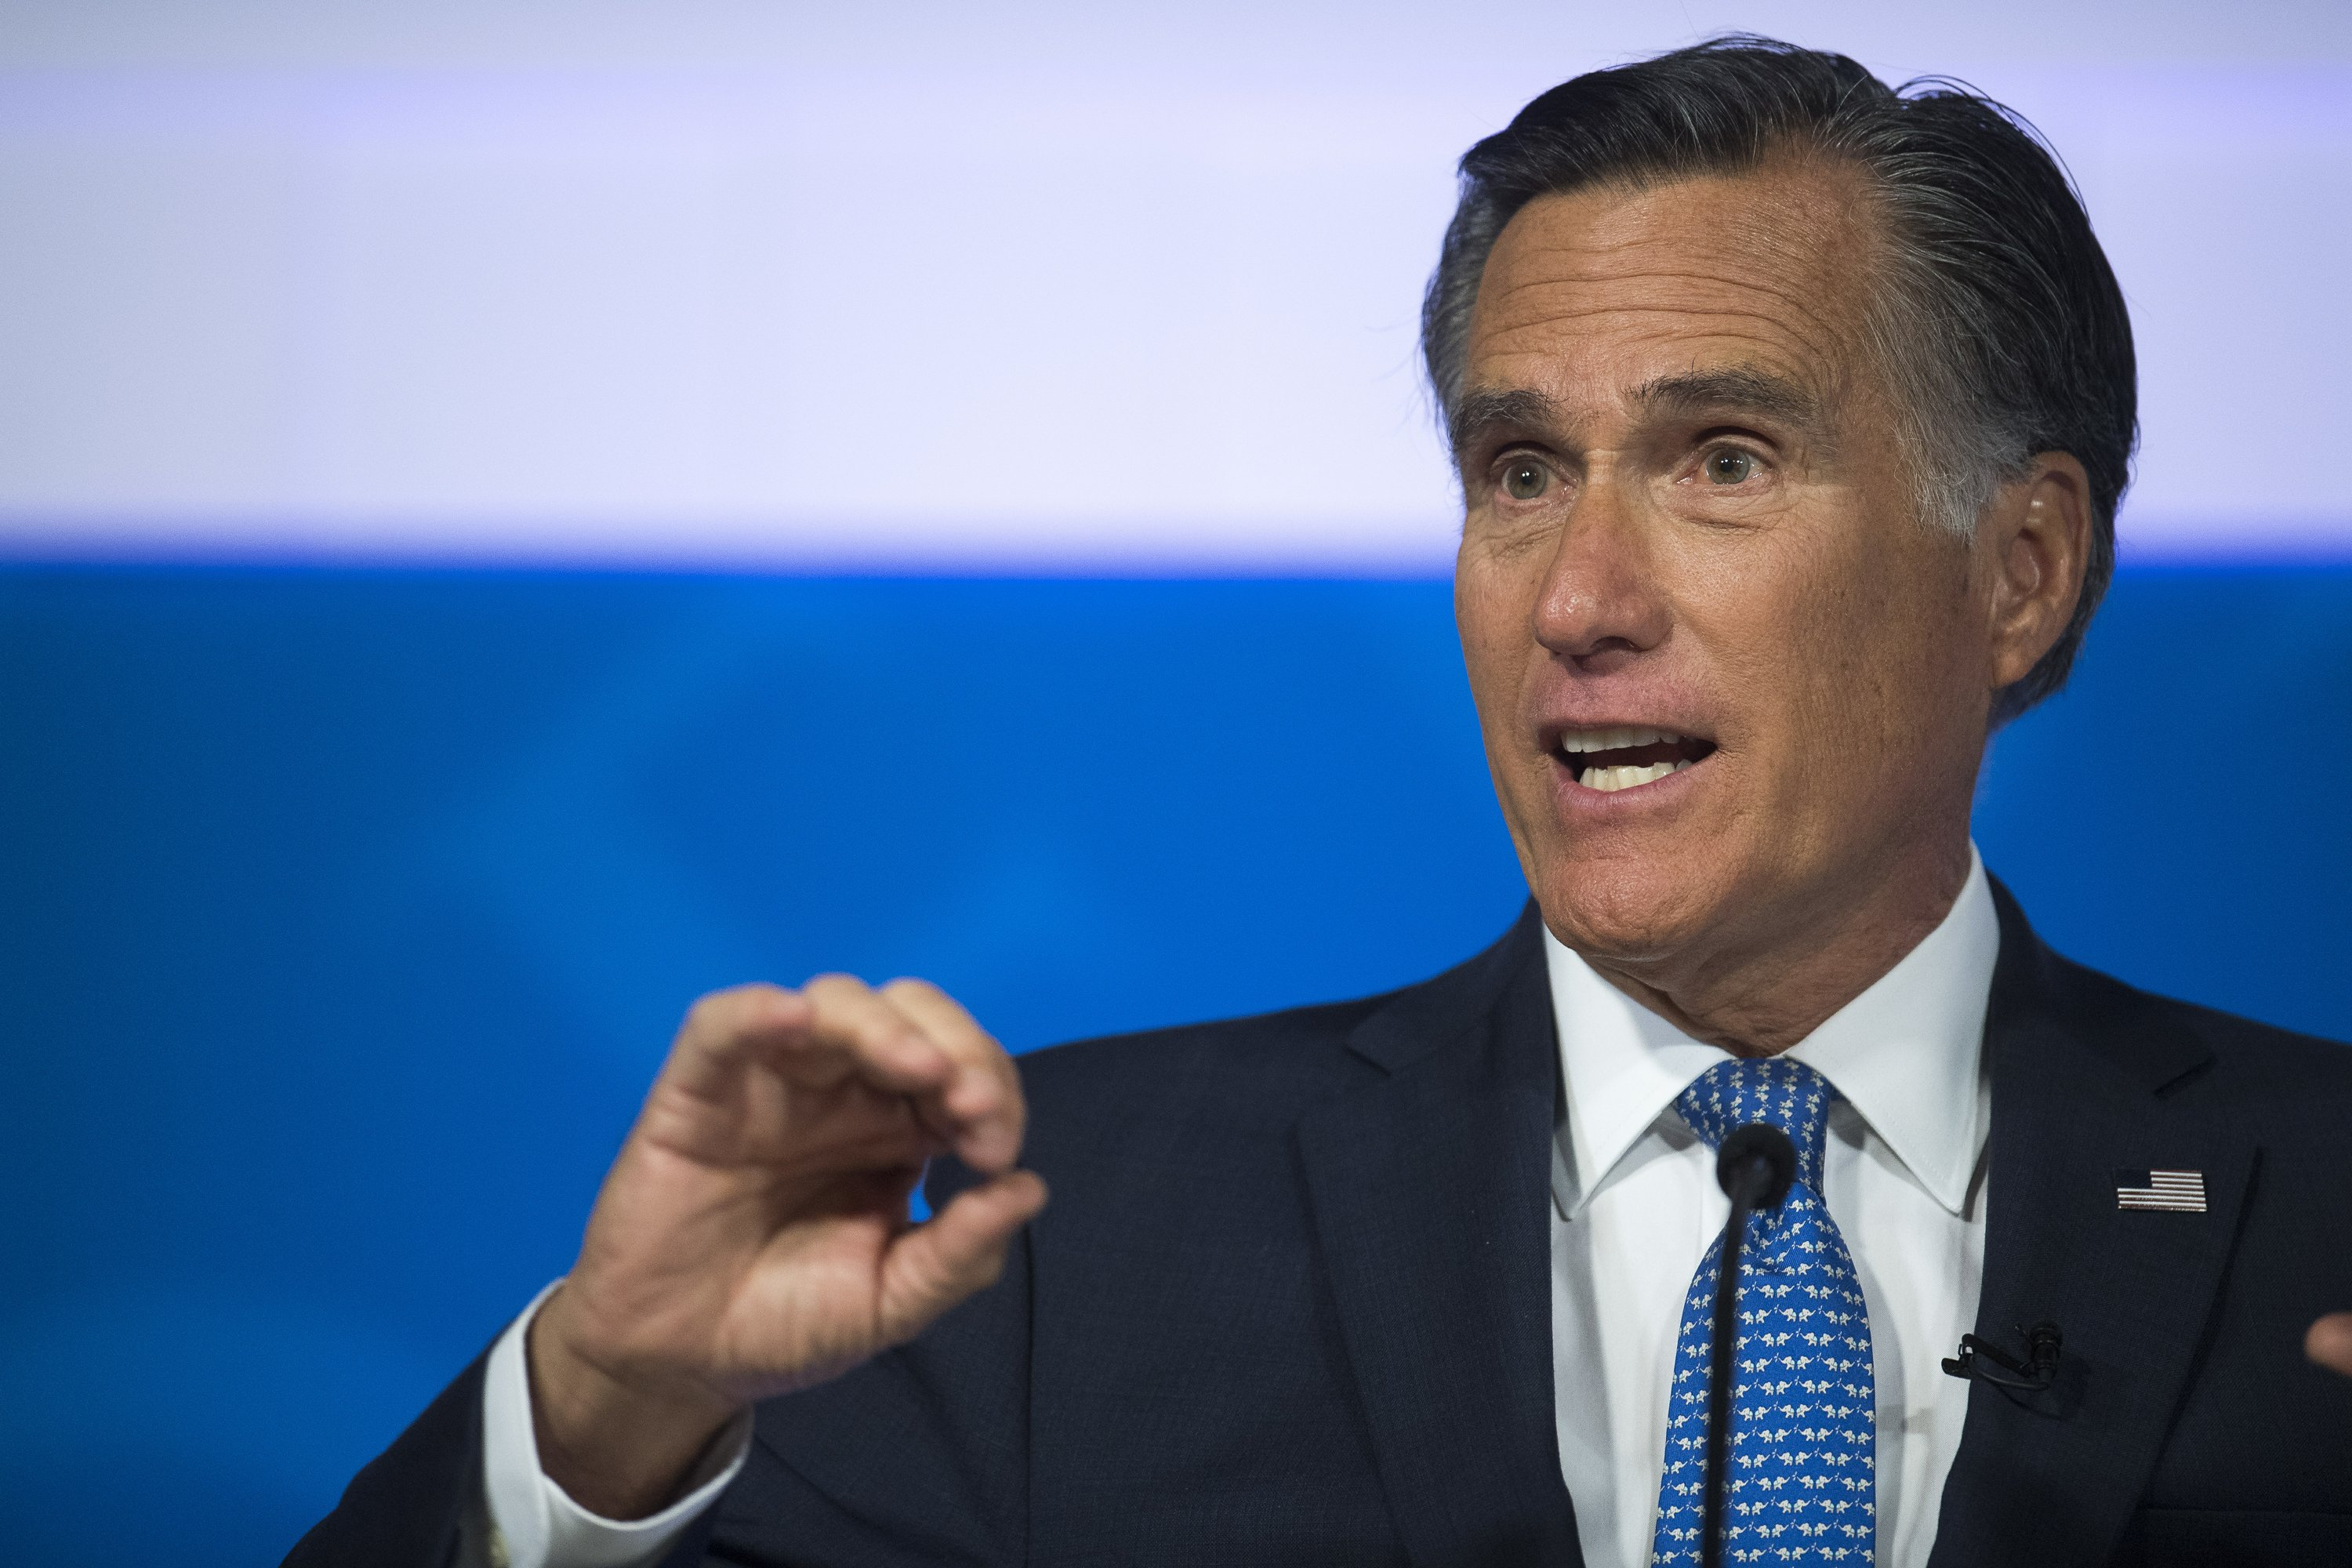 Romney says Supreme Court confirmation process 'awful'